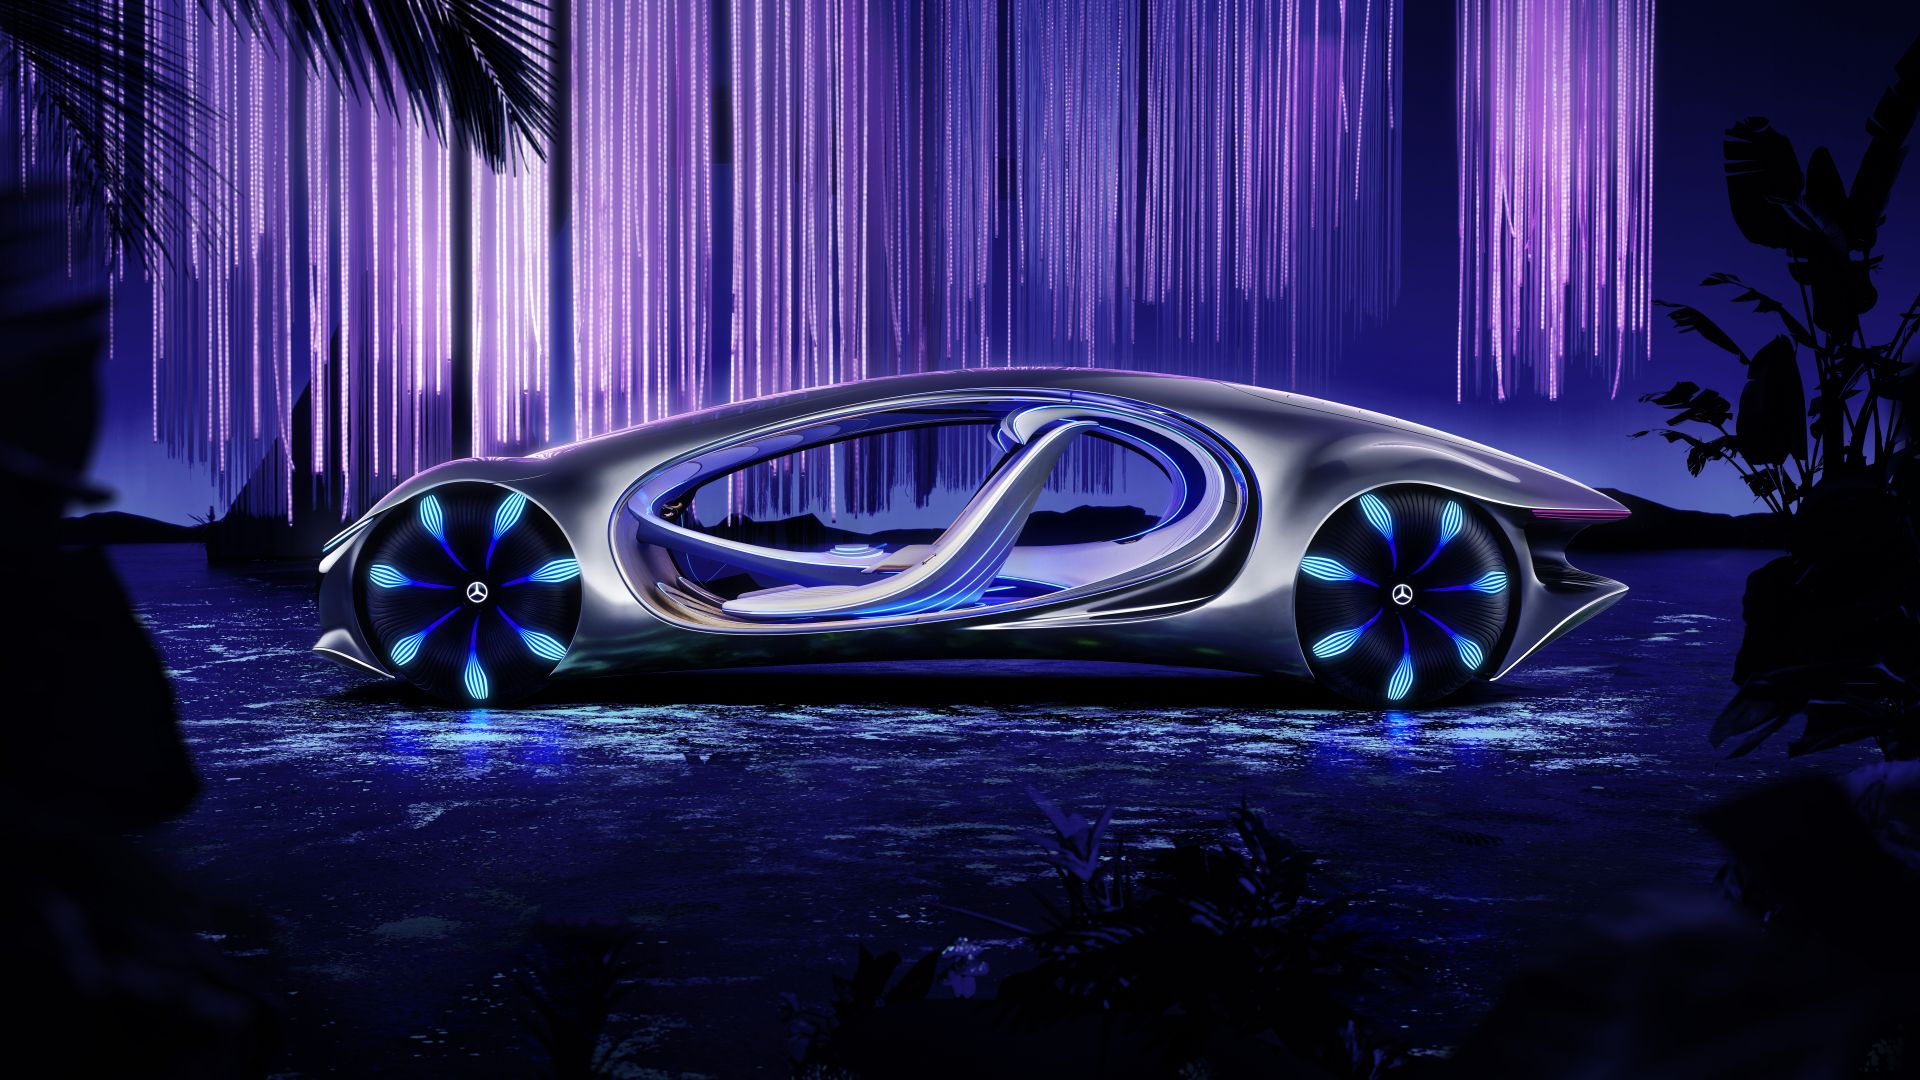 Mercedes-Benz VISION AVTR, CES 2020, electric cars, 8K, Mercedes-Benz VISION AVTR, CES 2020, electric cars, 8K (horizontal)